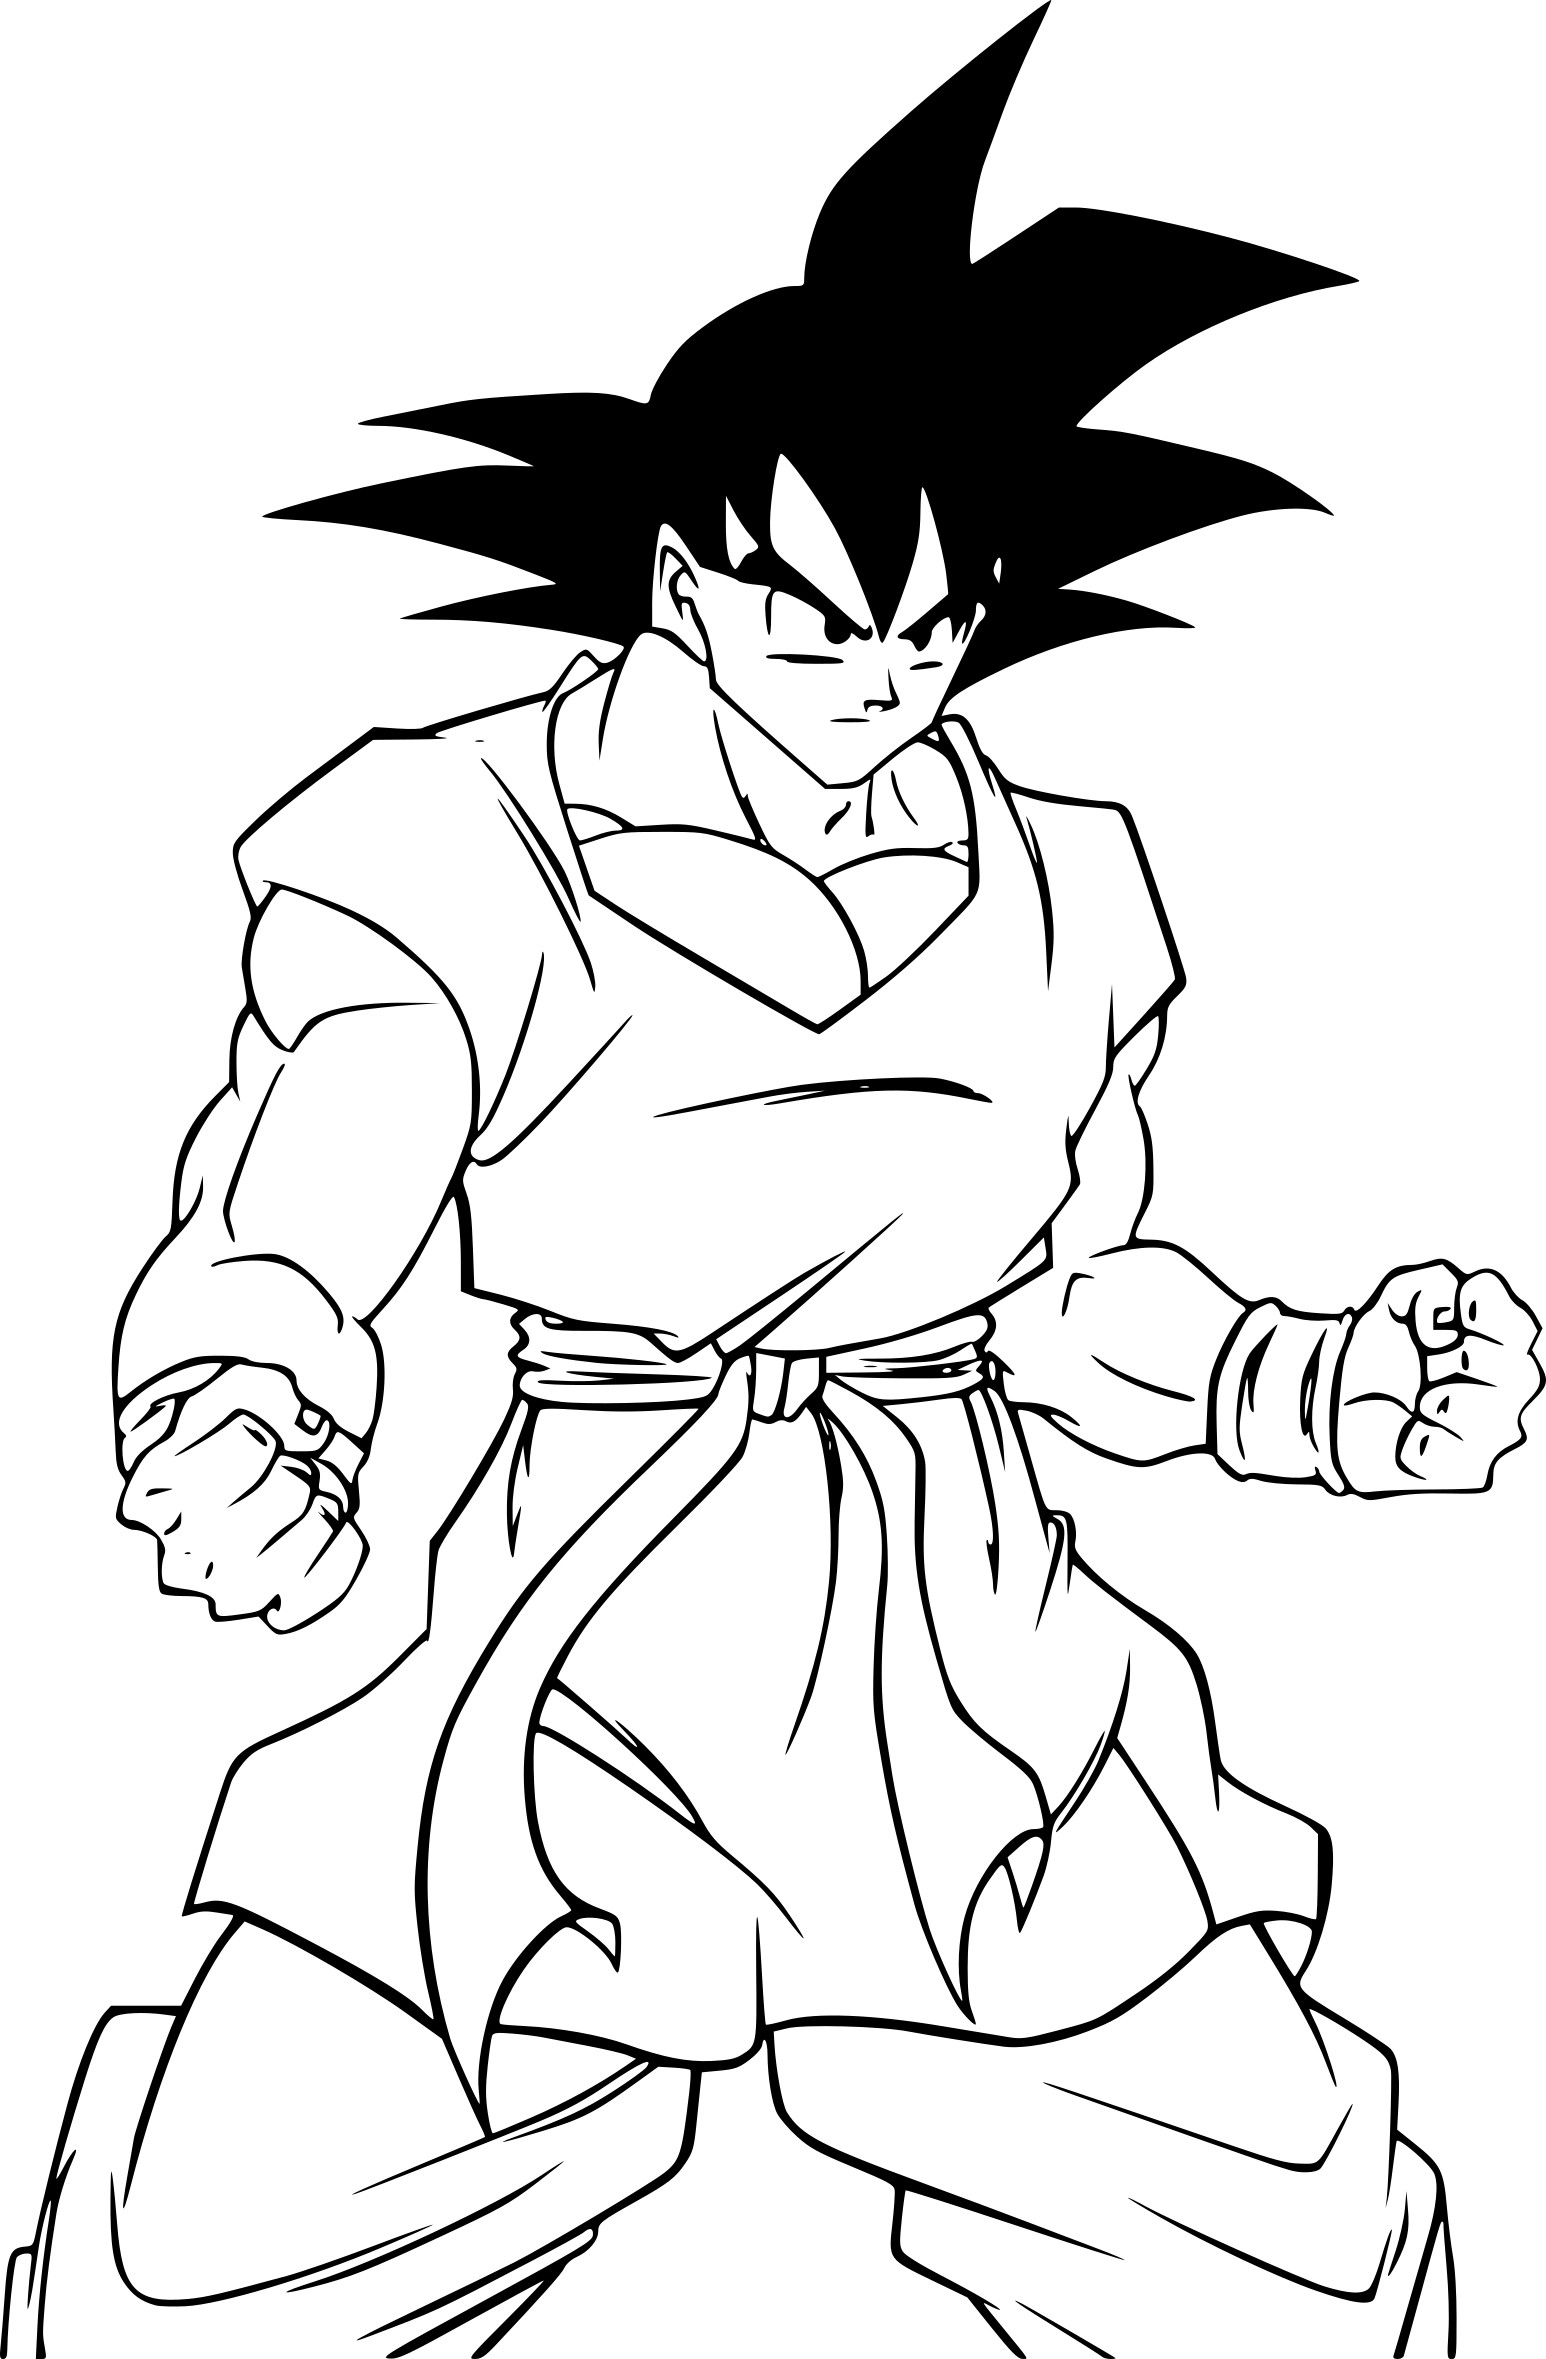 Coloriage son goku dragon ball z imprimer sur coloriages - Coloriage gratuit dragon ball z ...